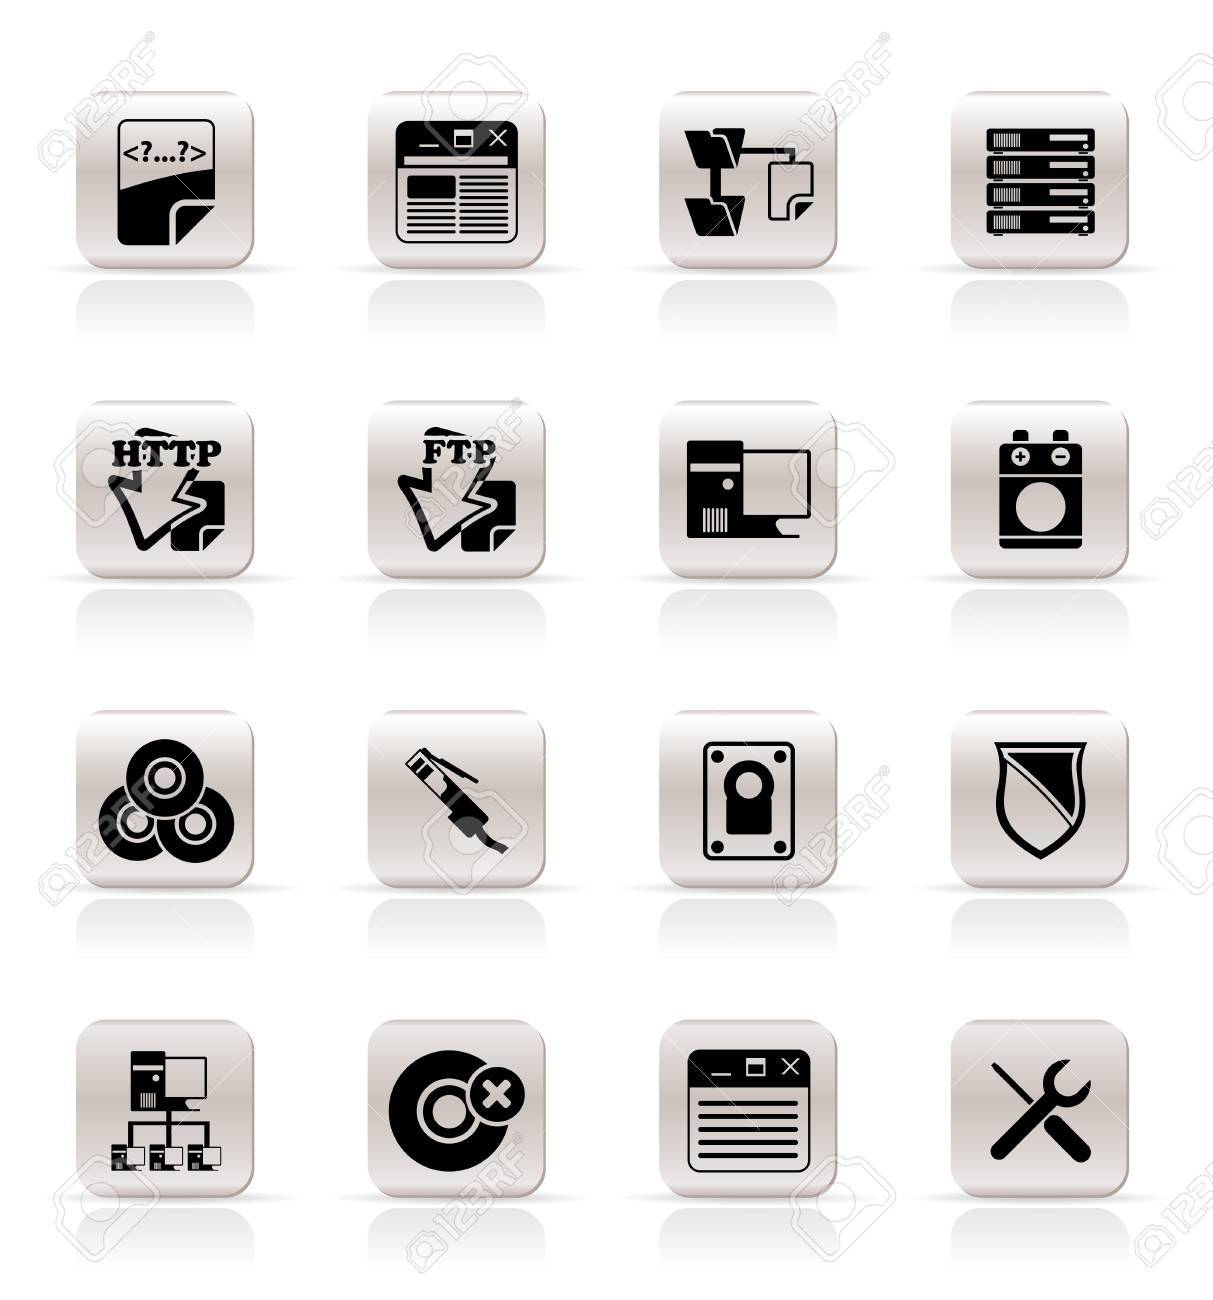 Simple Server Side Computer icons - Vector Icon Set Stock Vector - 5333292